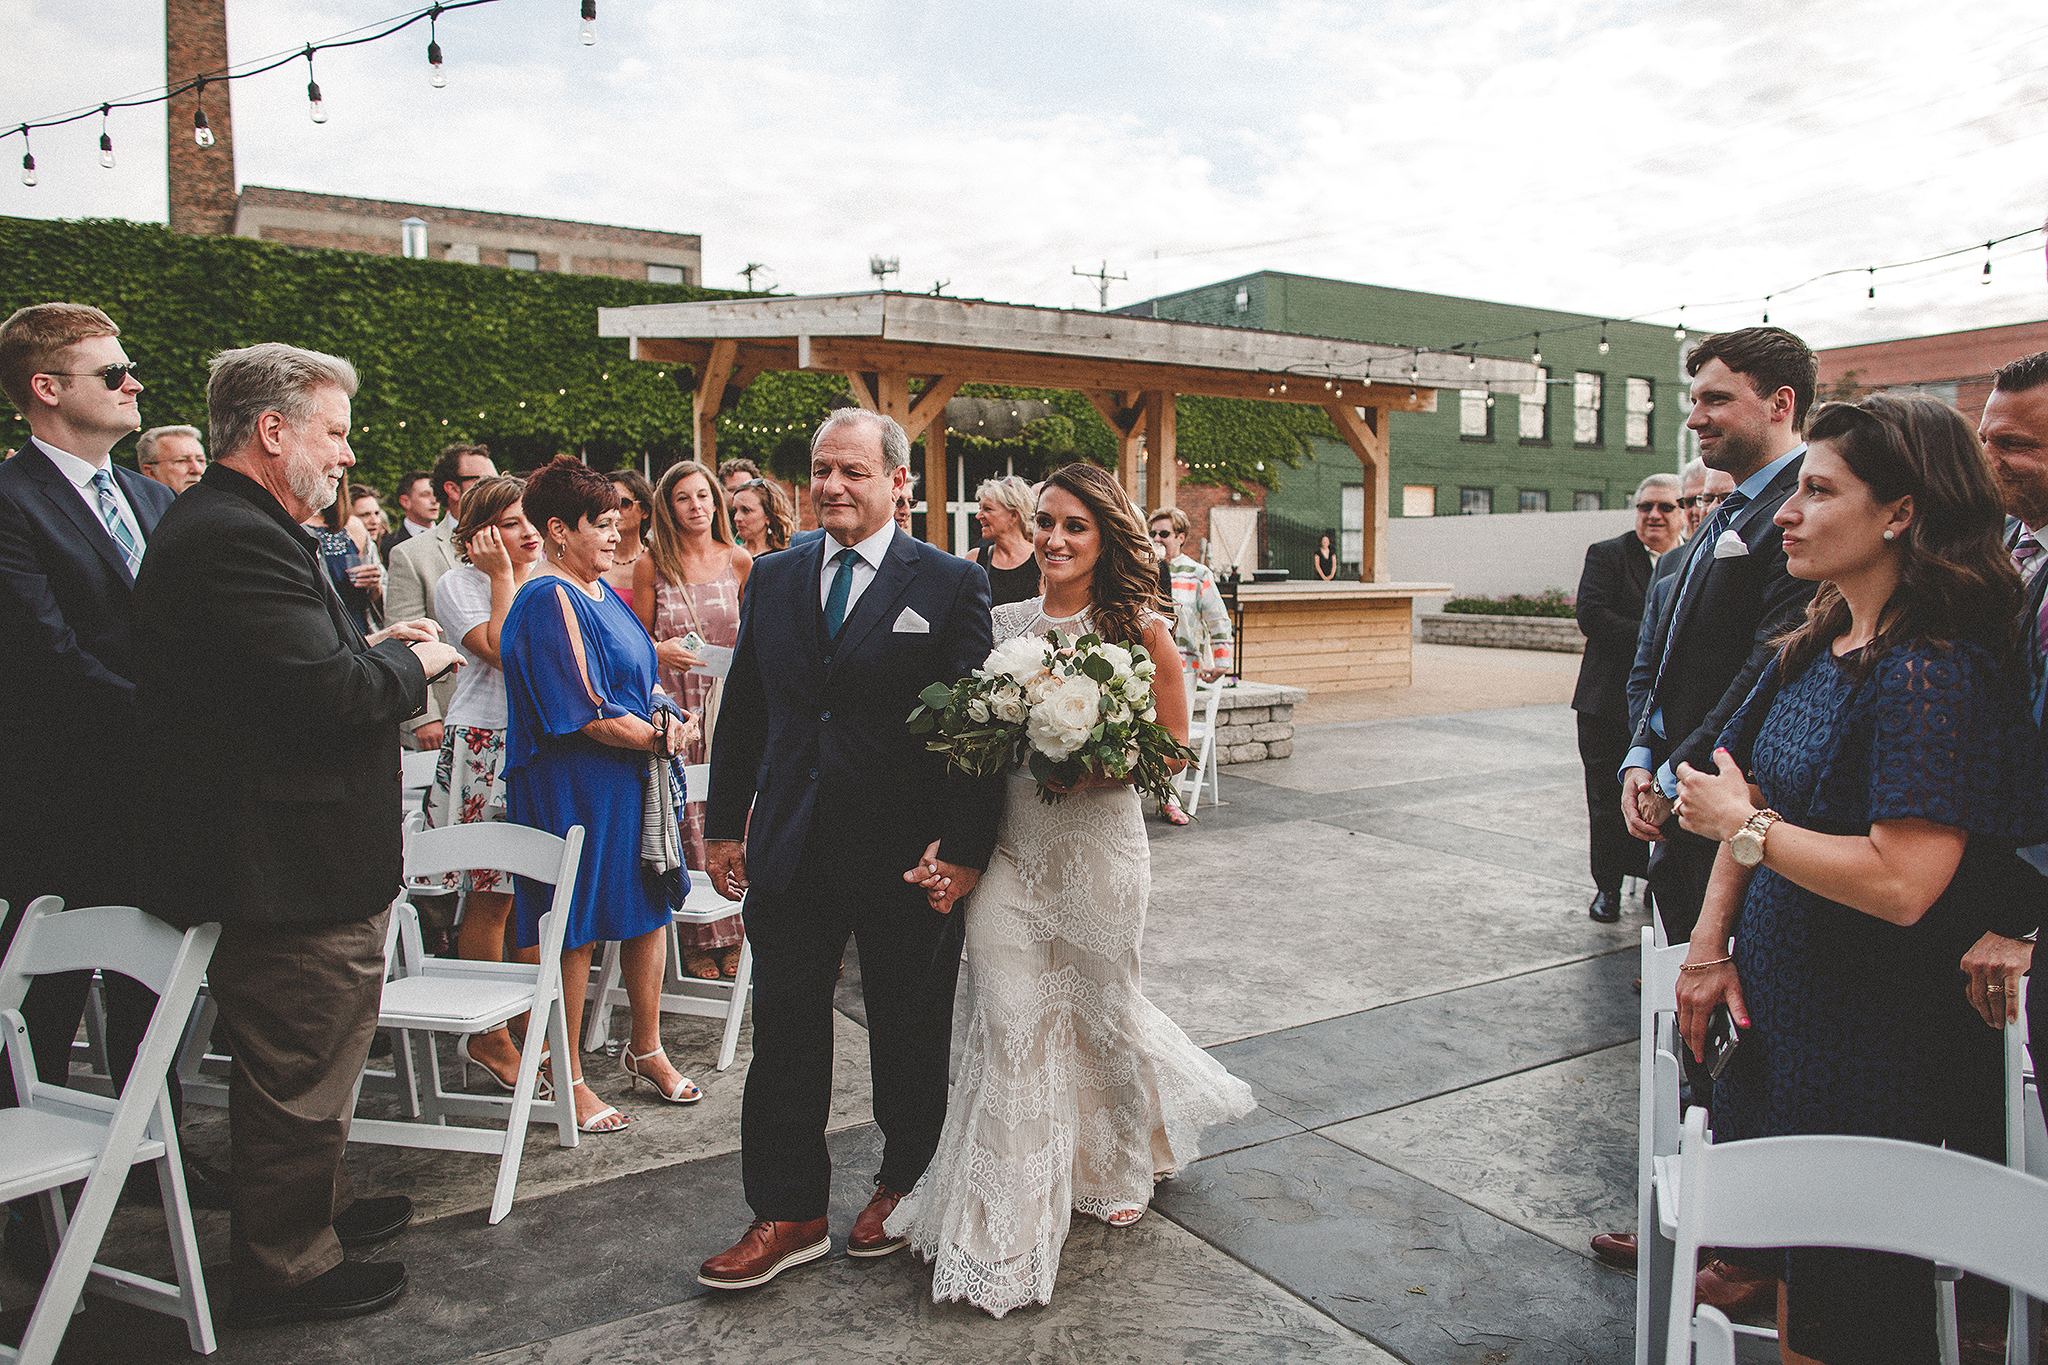 wedding ceremony must-haves | bride walking down aisle | the ivy house milwaukee wedding photographer